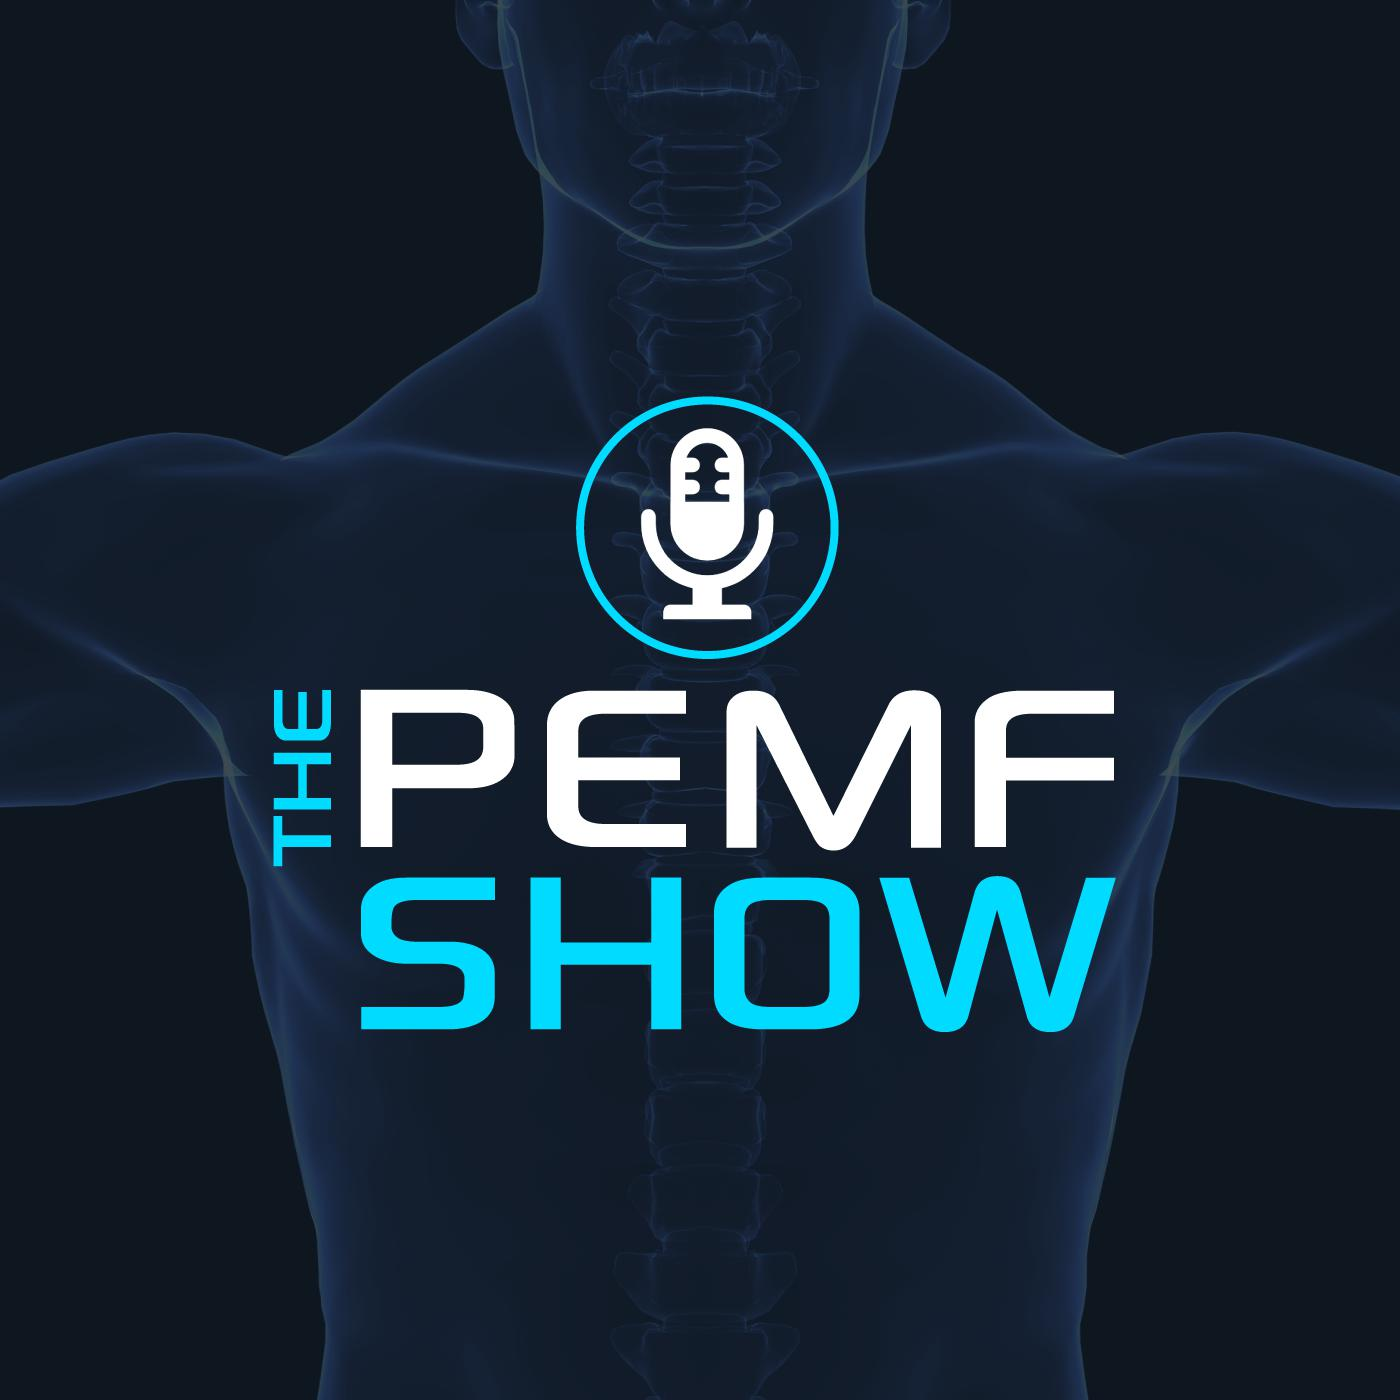 The PEMF SHOW – Episode 1 – How PEMF Works - The PEMF SHOW (podcast